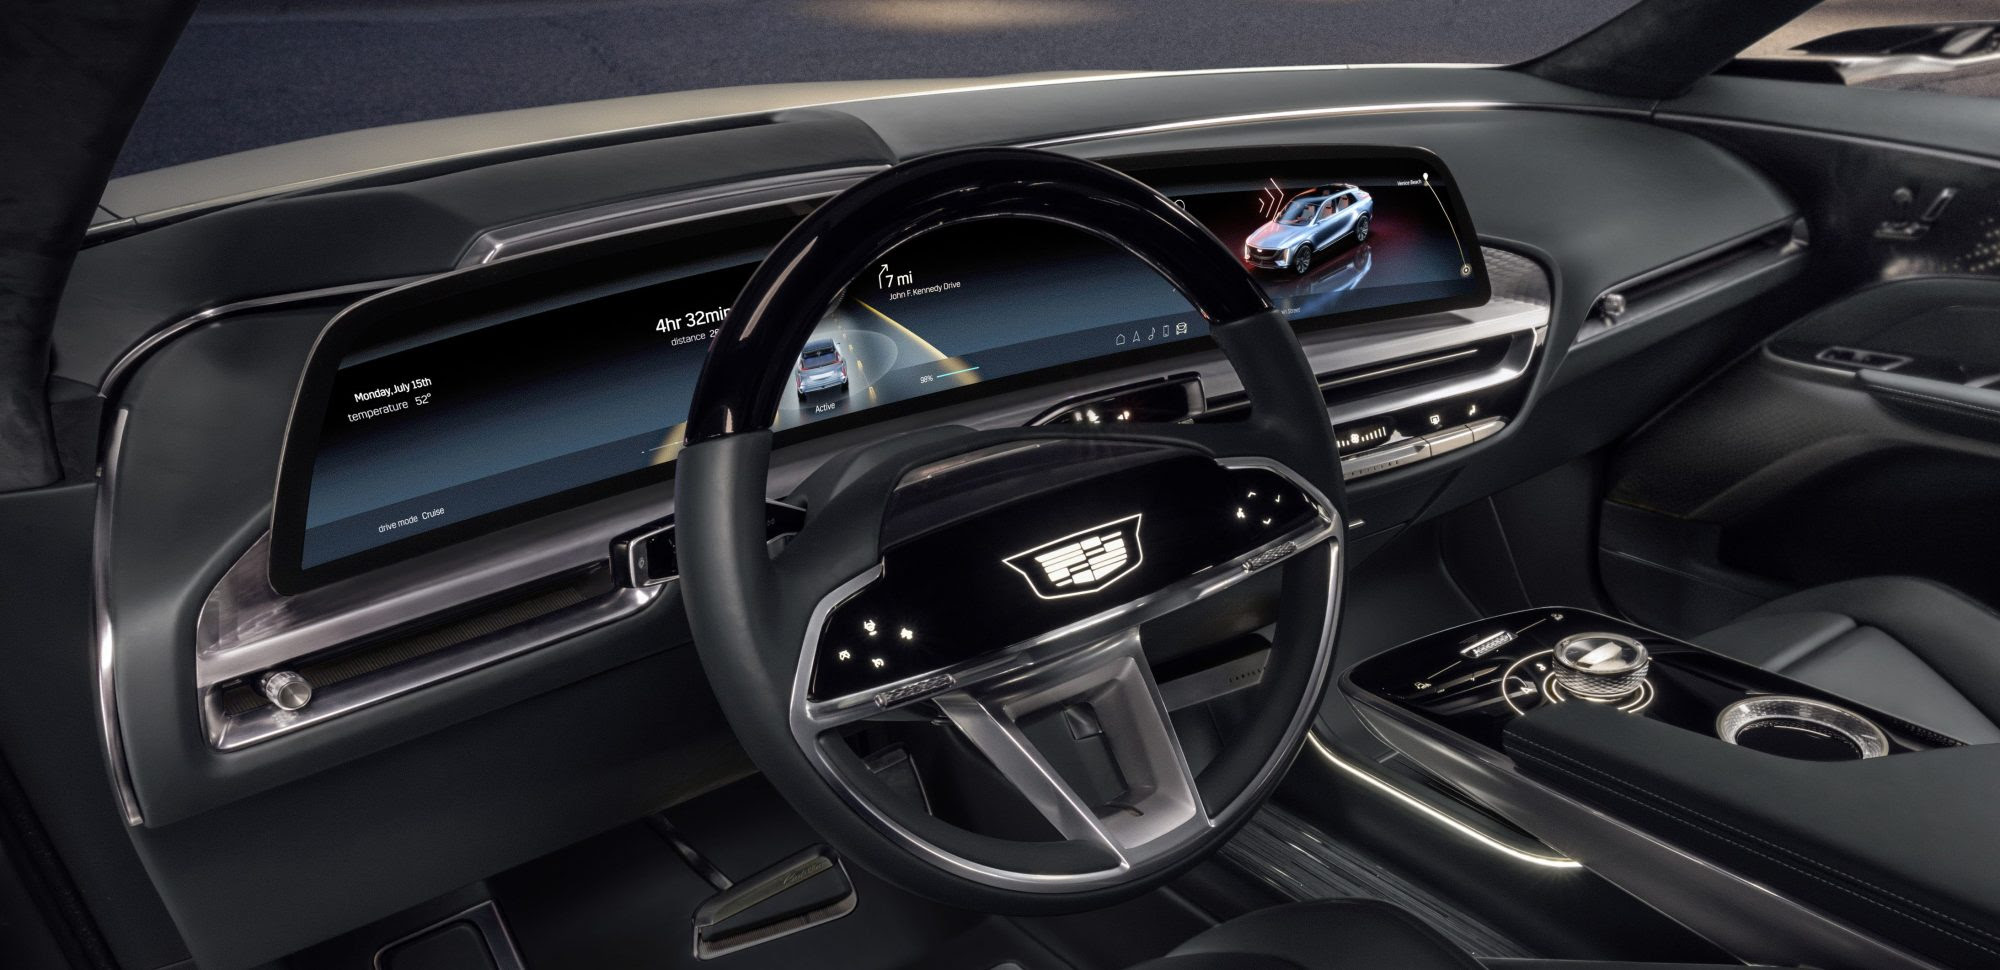 Cadillac's new infotainment system